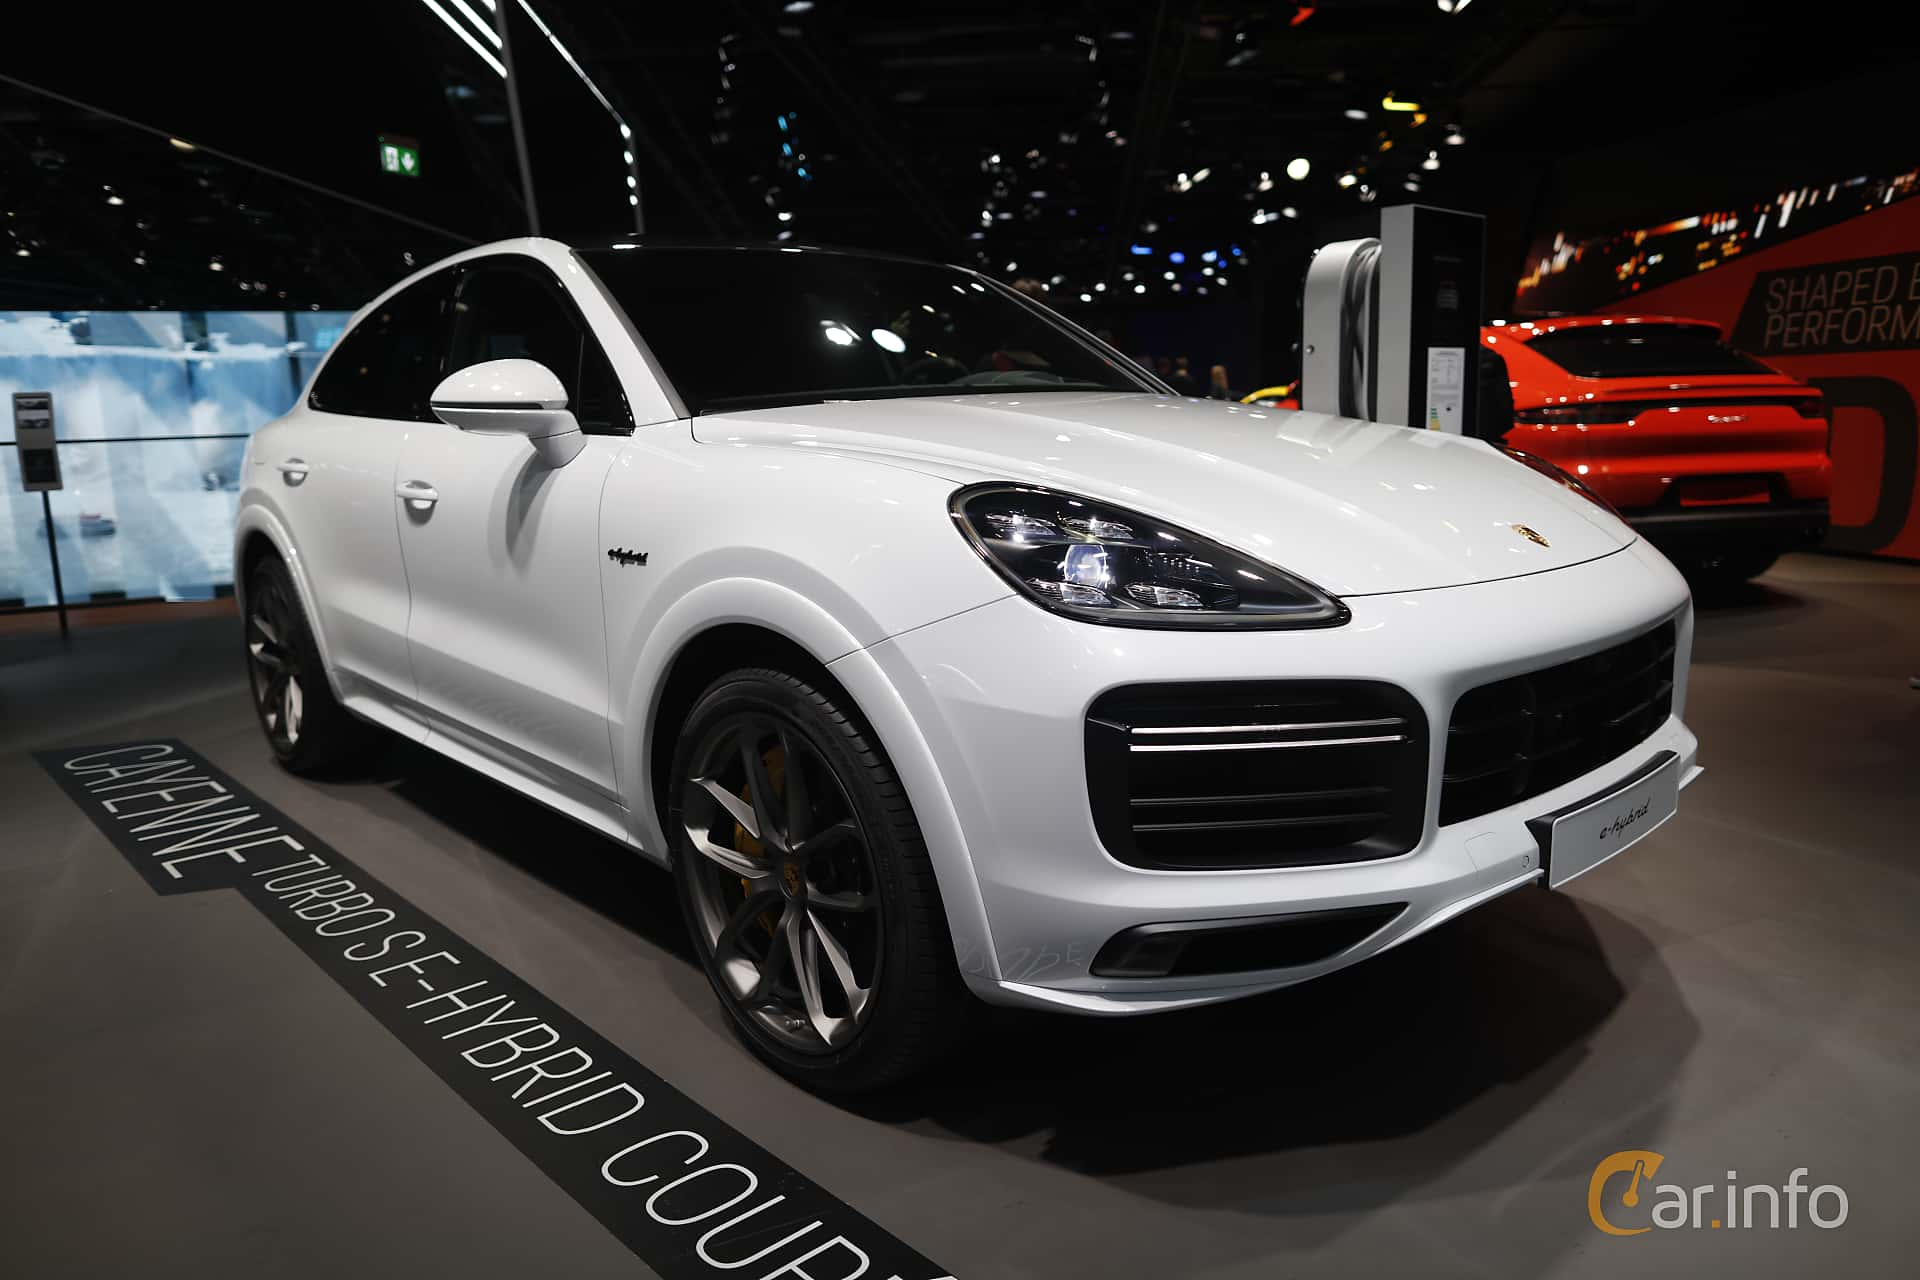 Front/Side  of Porsche Cayenne Coupé Turbo S E-Hybrid 4.0 V8 TipTronic S, 680ps, 2020 at IAA 2019